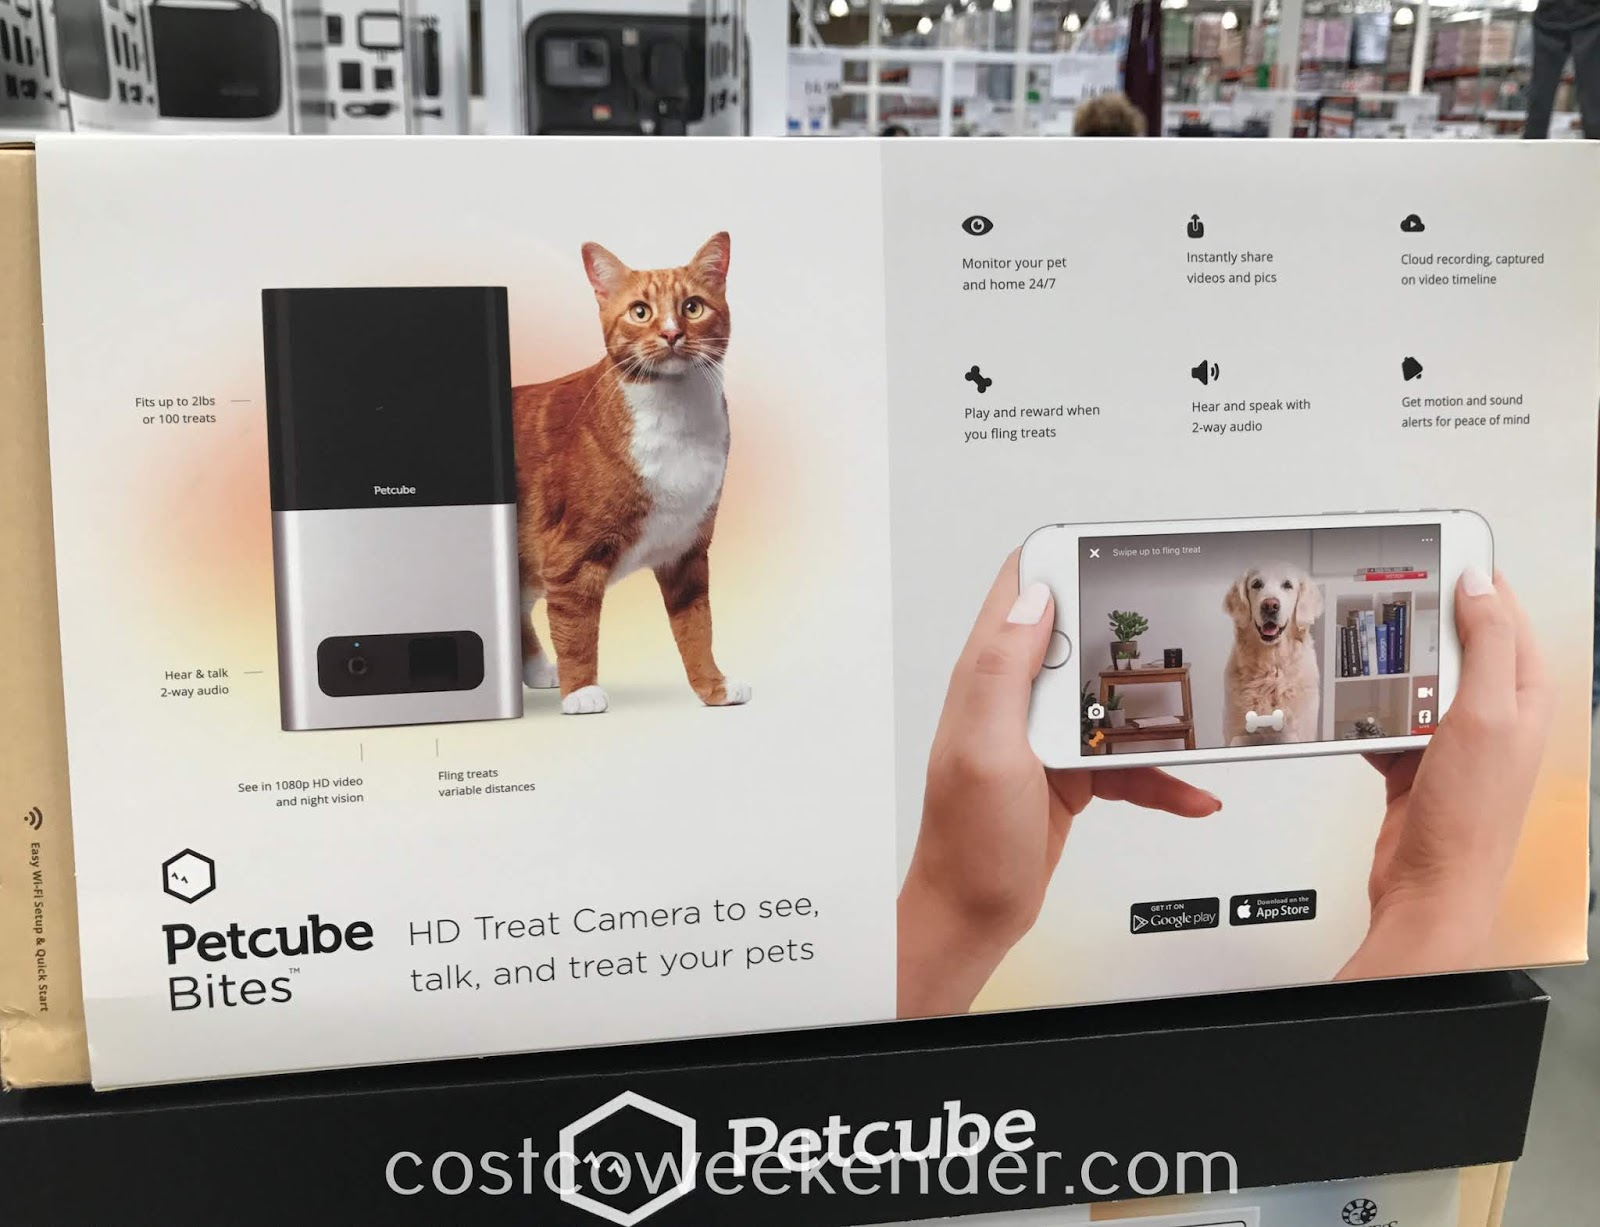 Costco 1213719 - Petcube Bites: great for any dog or cat owner